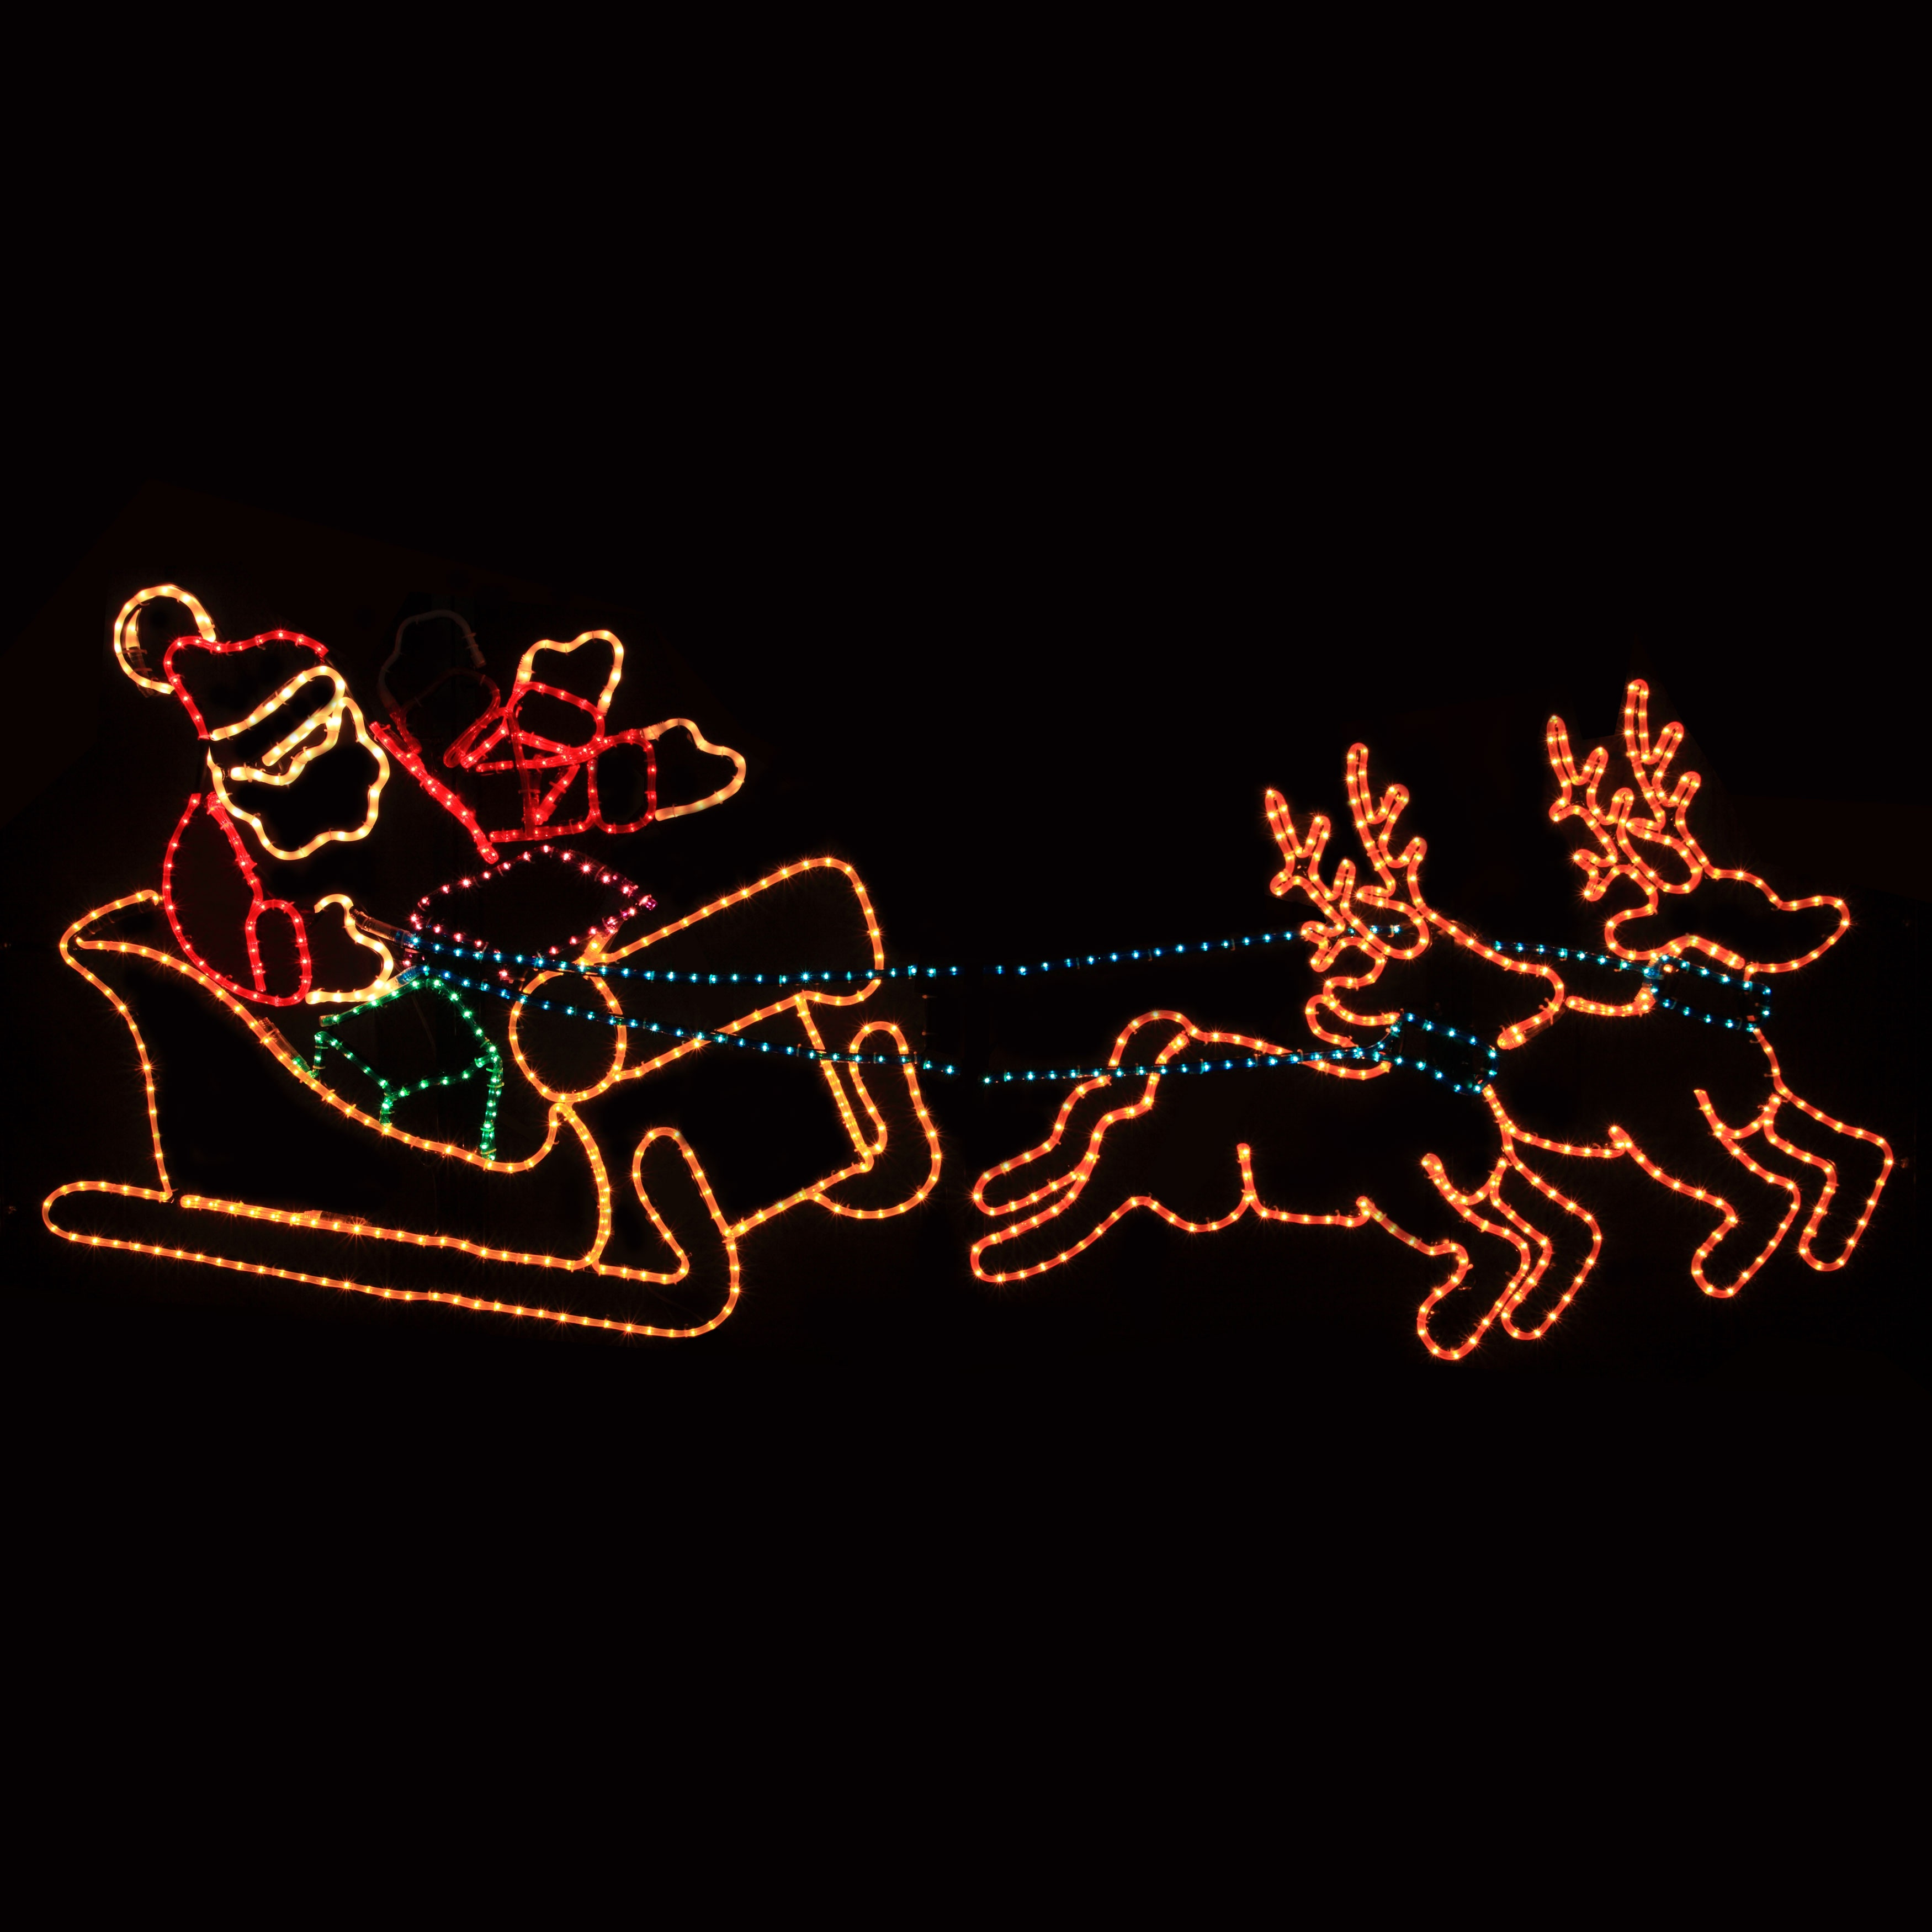 Exterieur Fly Outdoor Decoration - Waving Santa With Sleigh And Reindeer